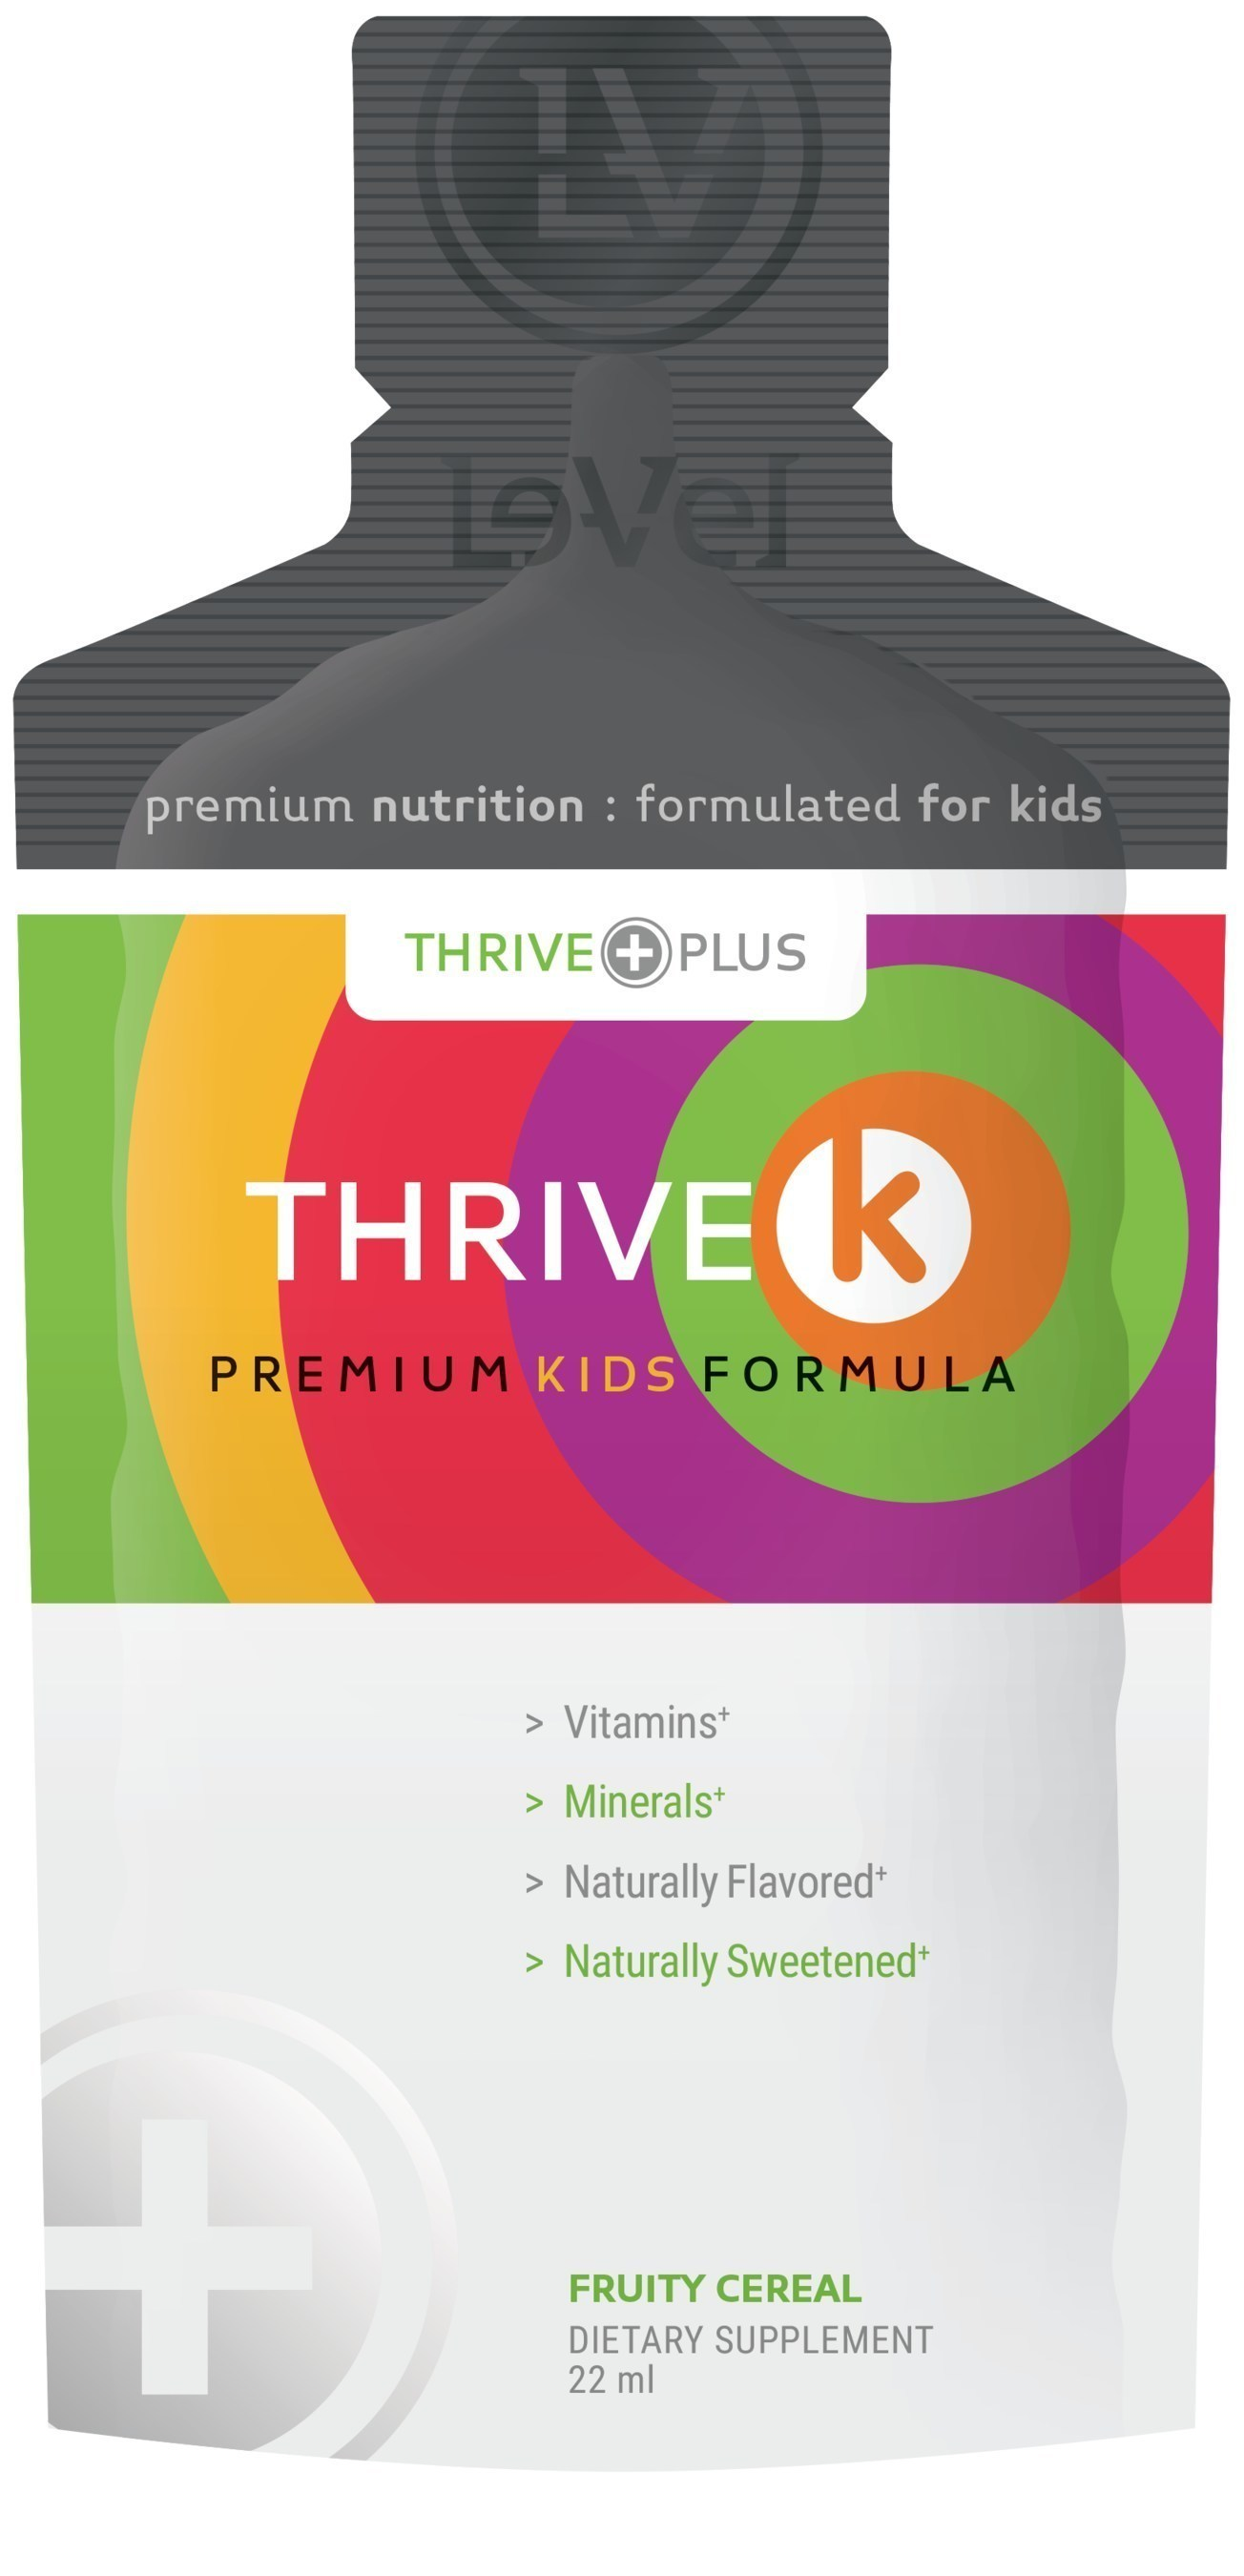 THRIVE K for Kids, a new great-tasting proprietary children's multivitamin and mineral blend in an easily consumable gel form.